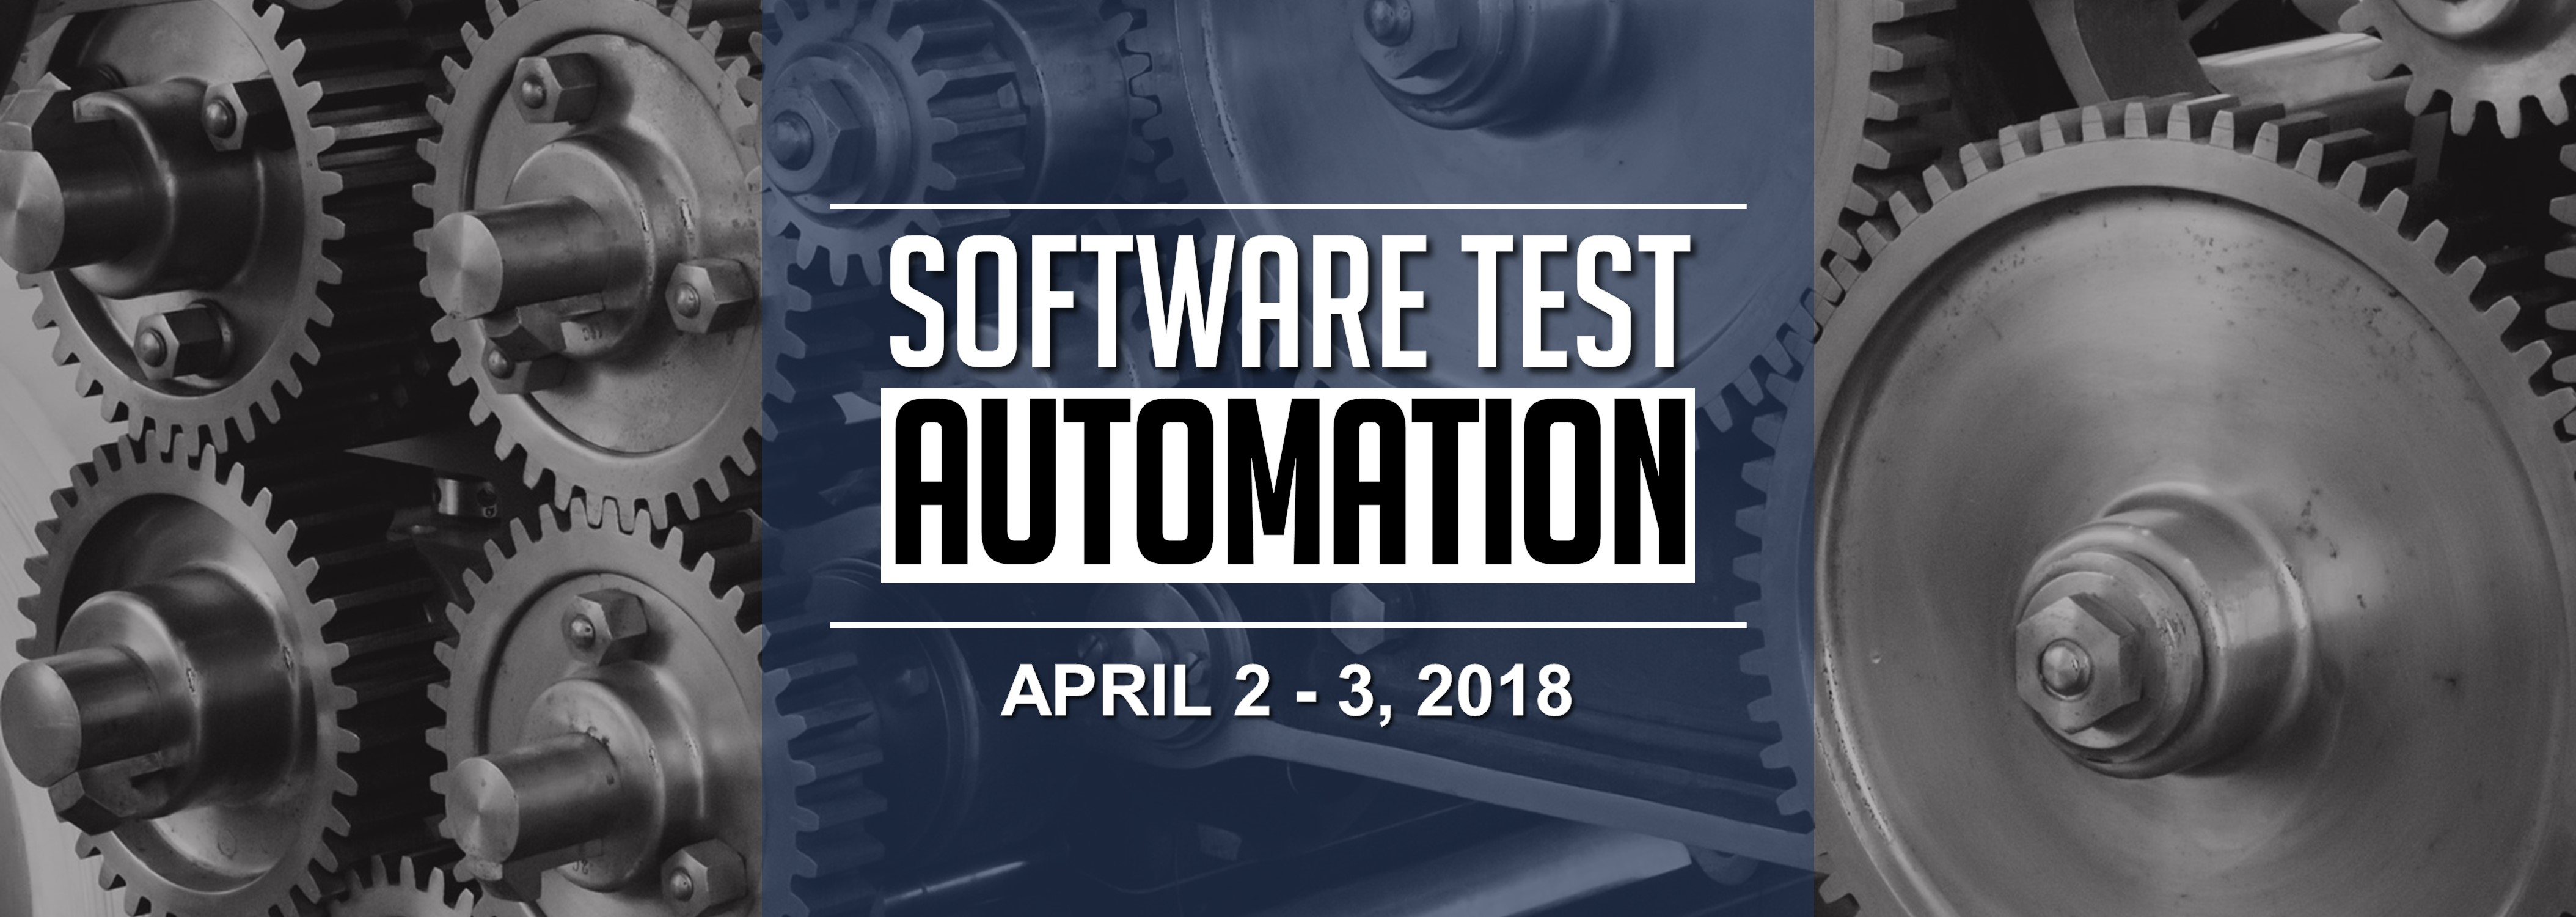 Software Test Automation on April 2 - 3, 2018